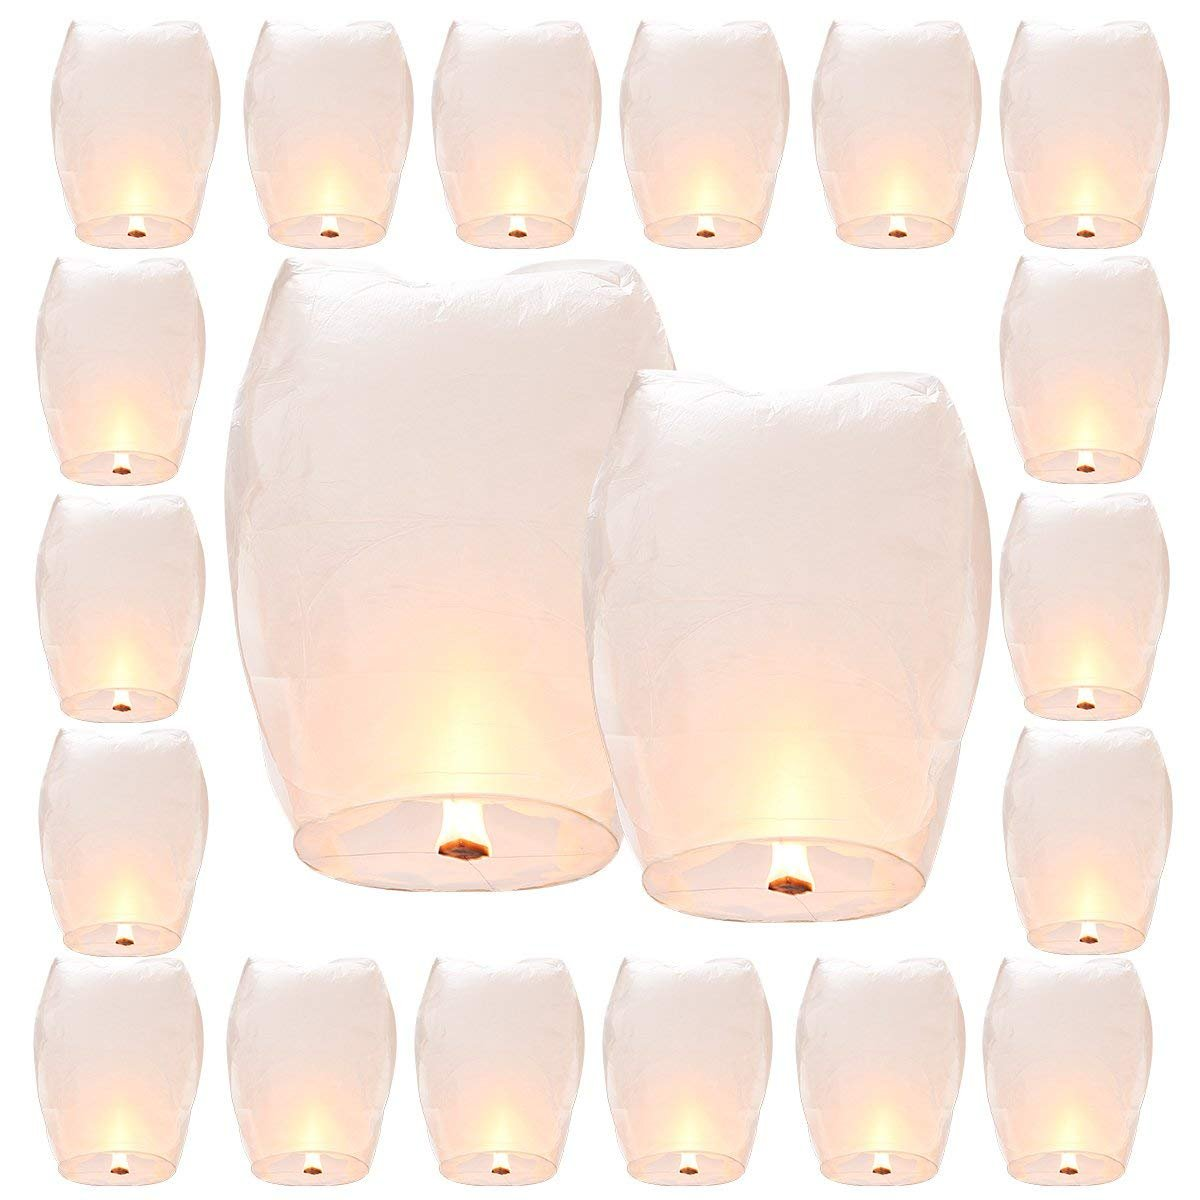 20 PCS Sky Lanterns, Doris Direct Eco-Friendly Flying Lanterns -100% Biodegradable for Christmas, New Year, Chinese New Year, New Years Eve, Weddings & Parties